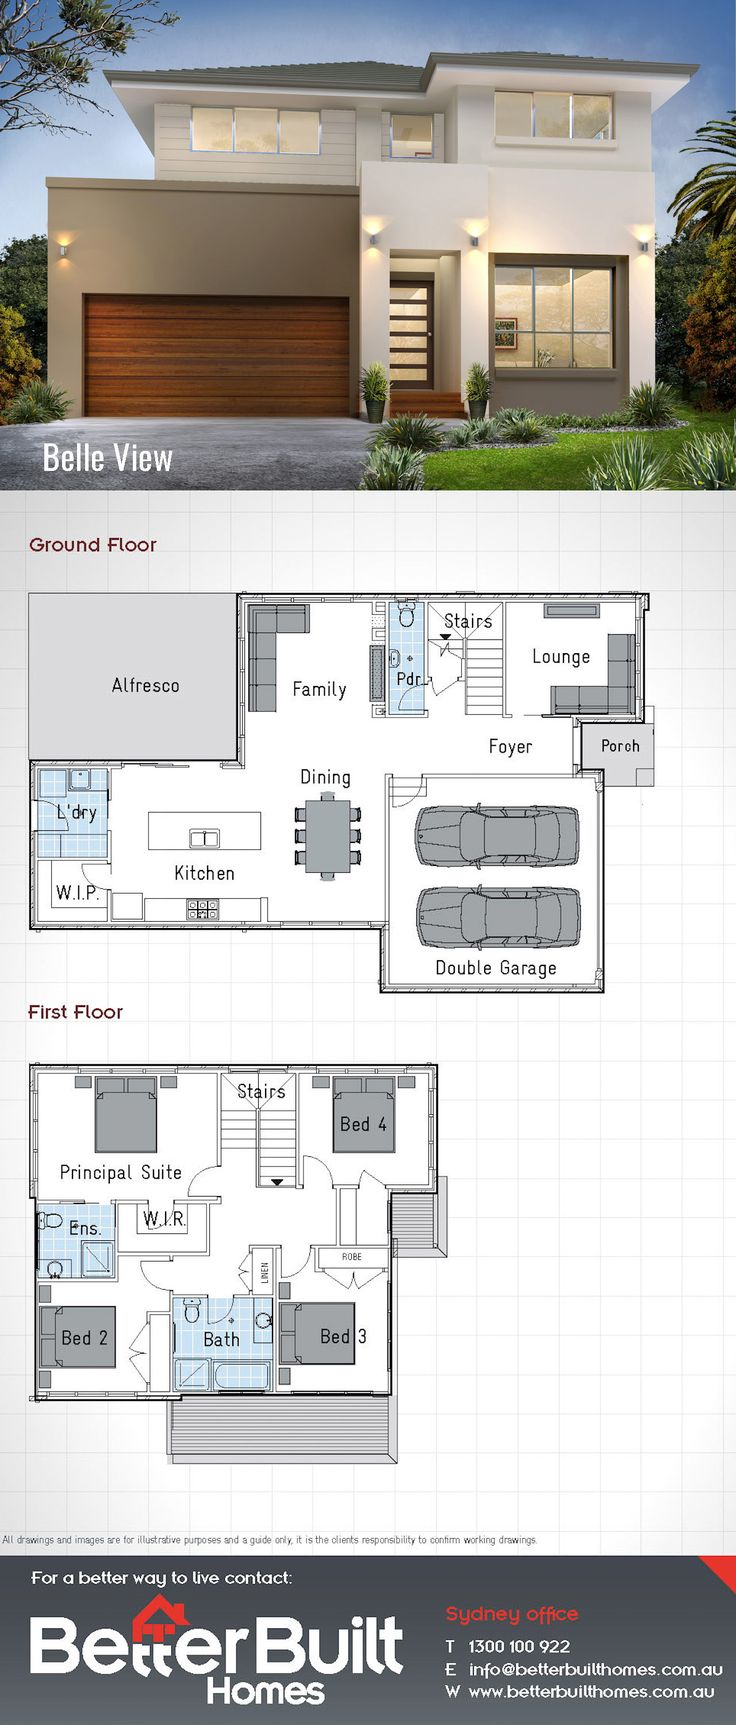 The belle view 26 double storey house design 232 sq m 10 7m x